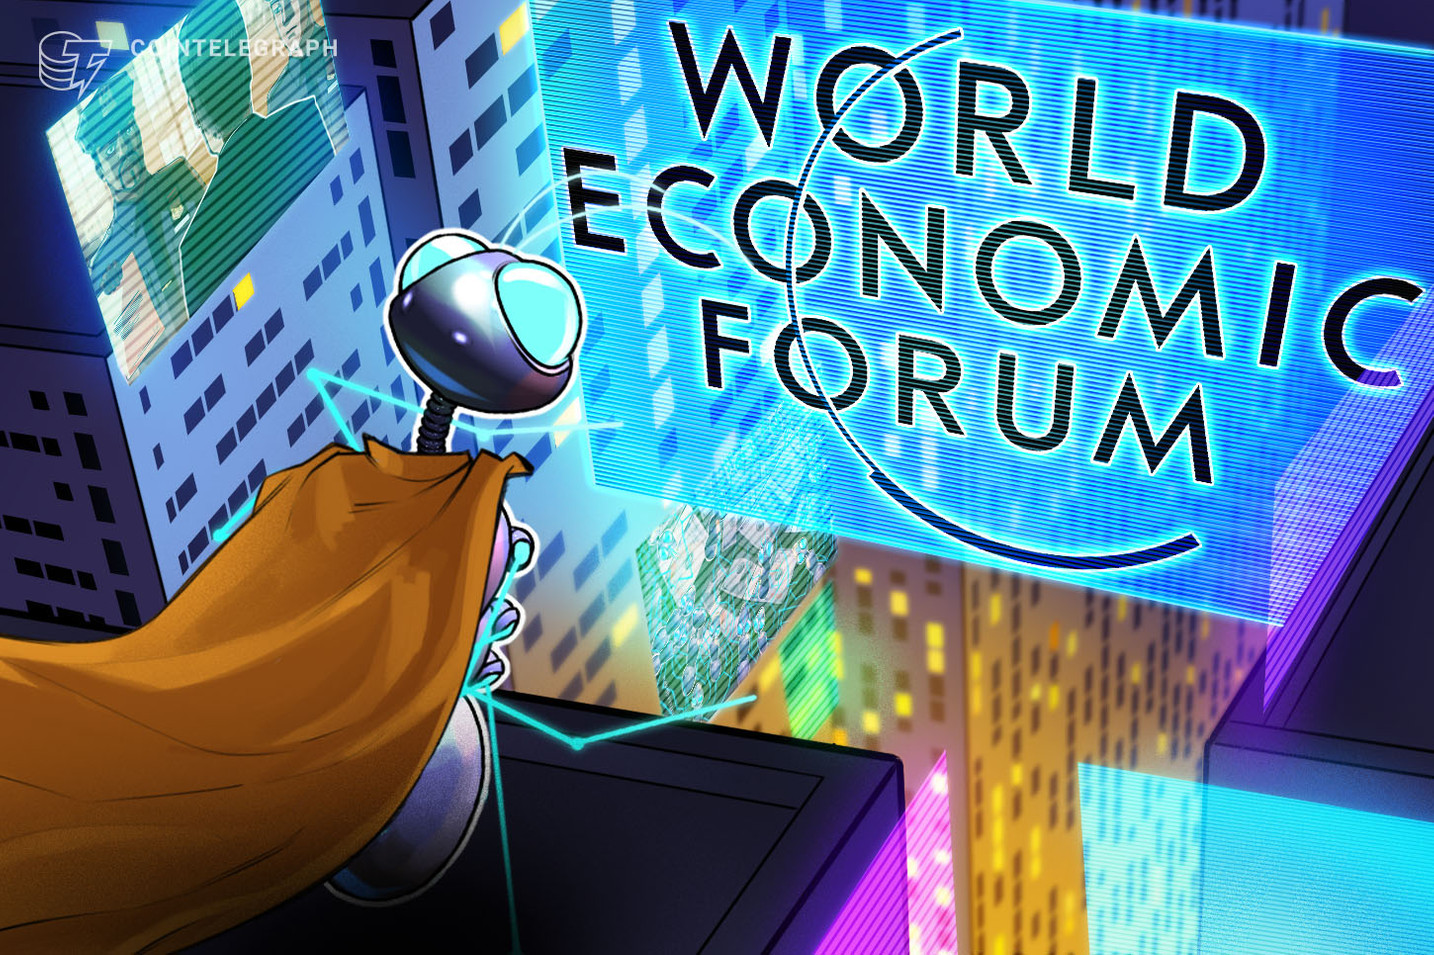 World Economic Forum Suggests Fighting Corruption With Blockchain Tech